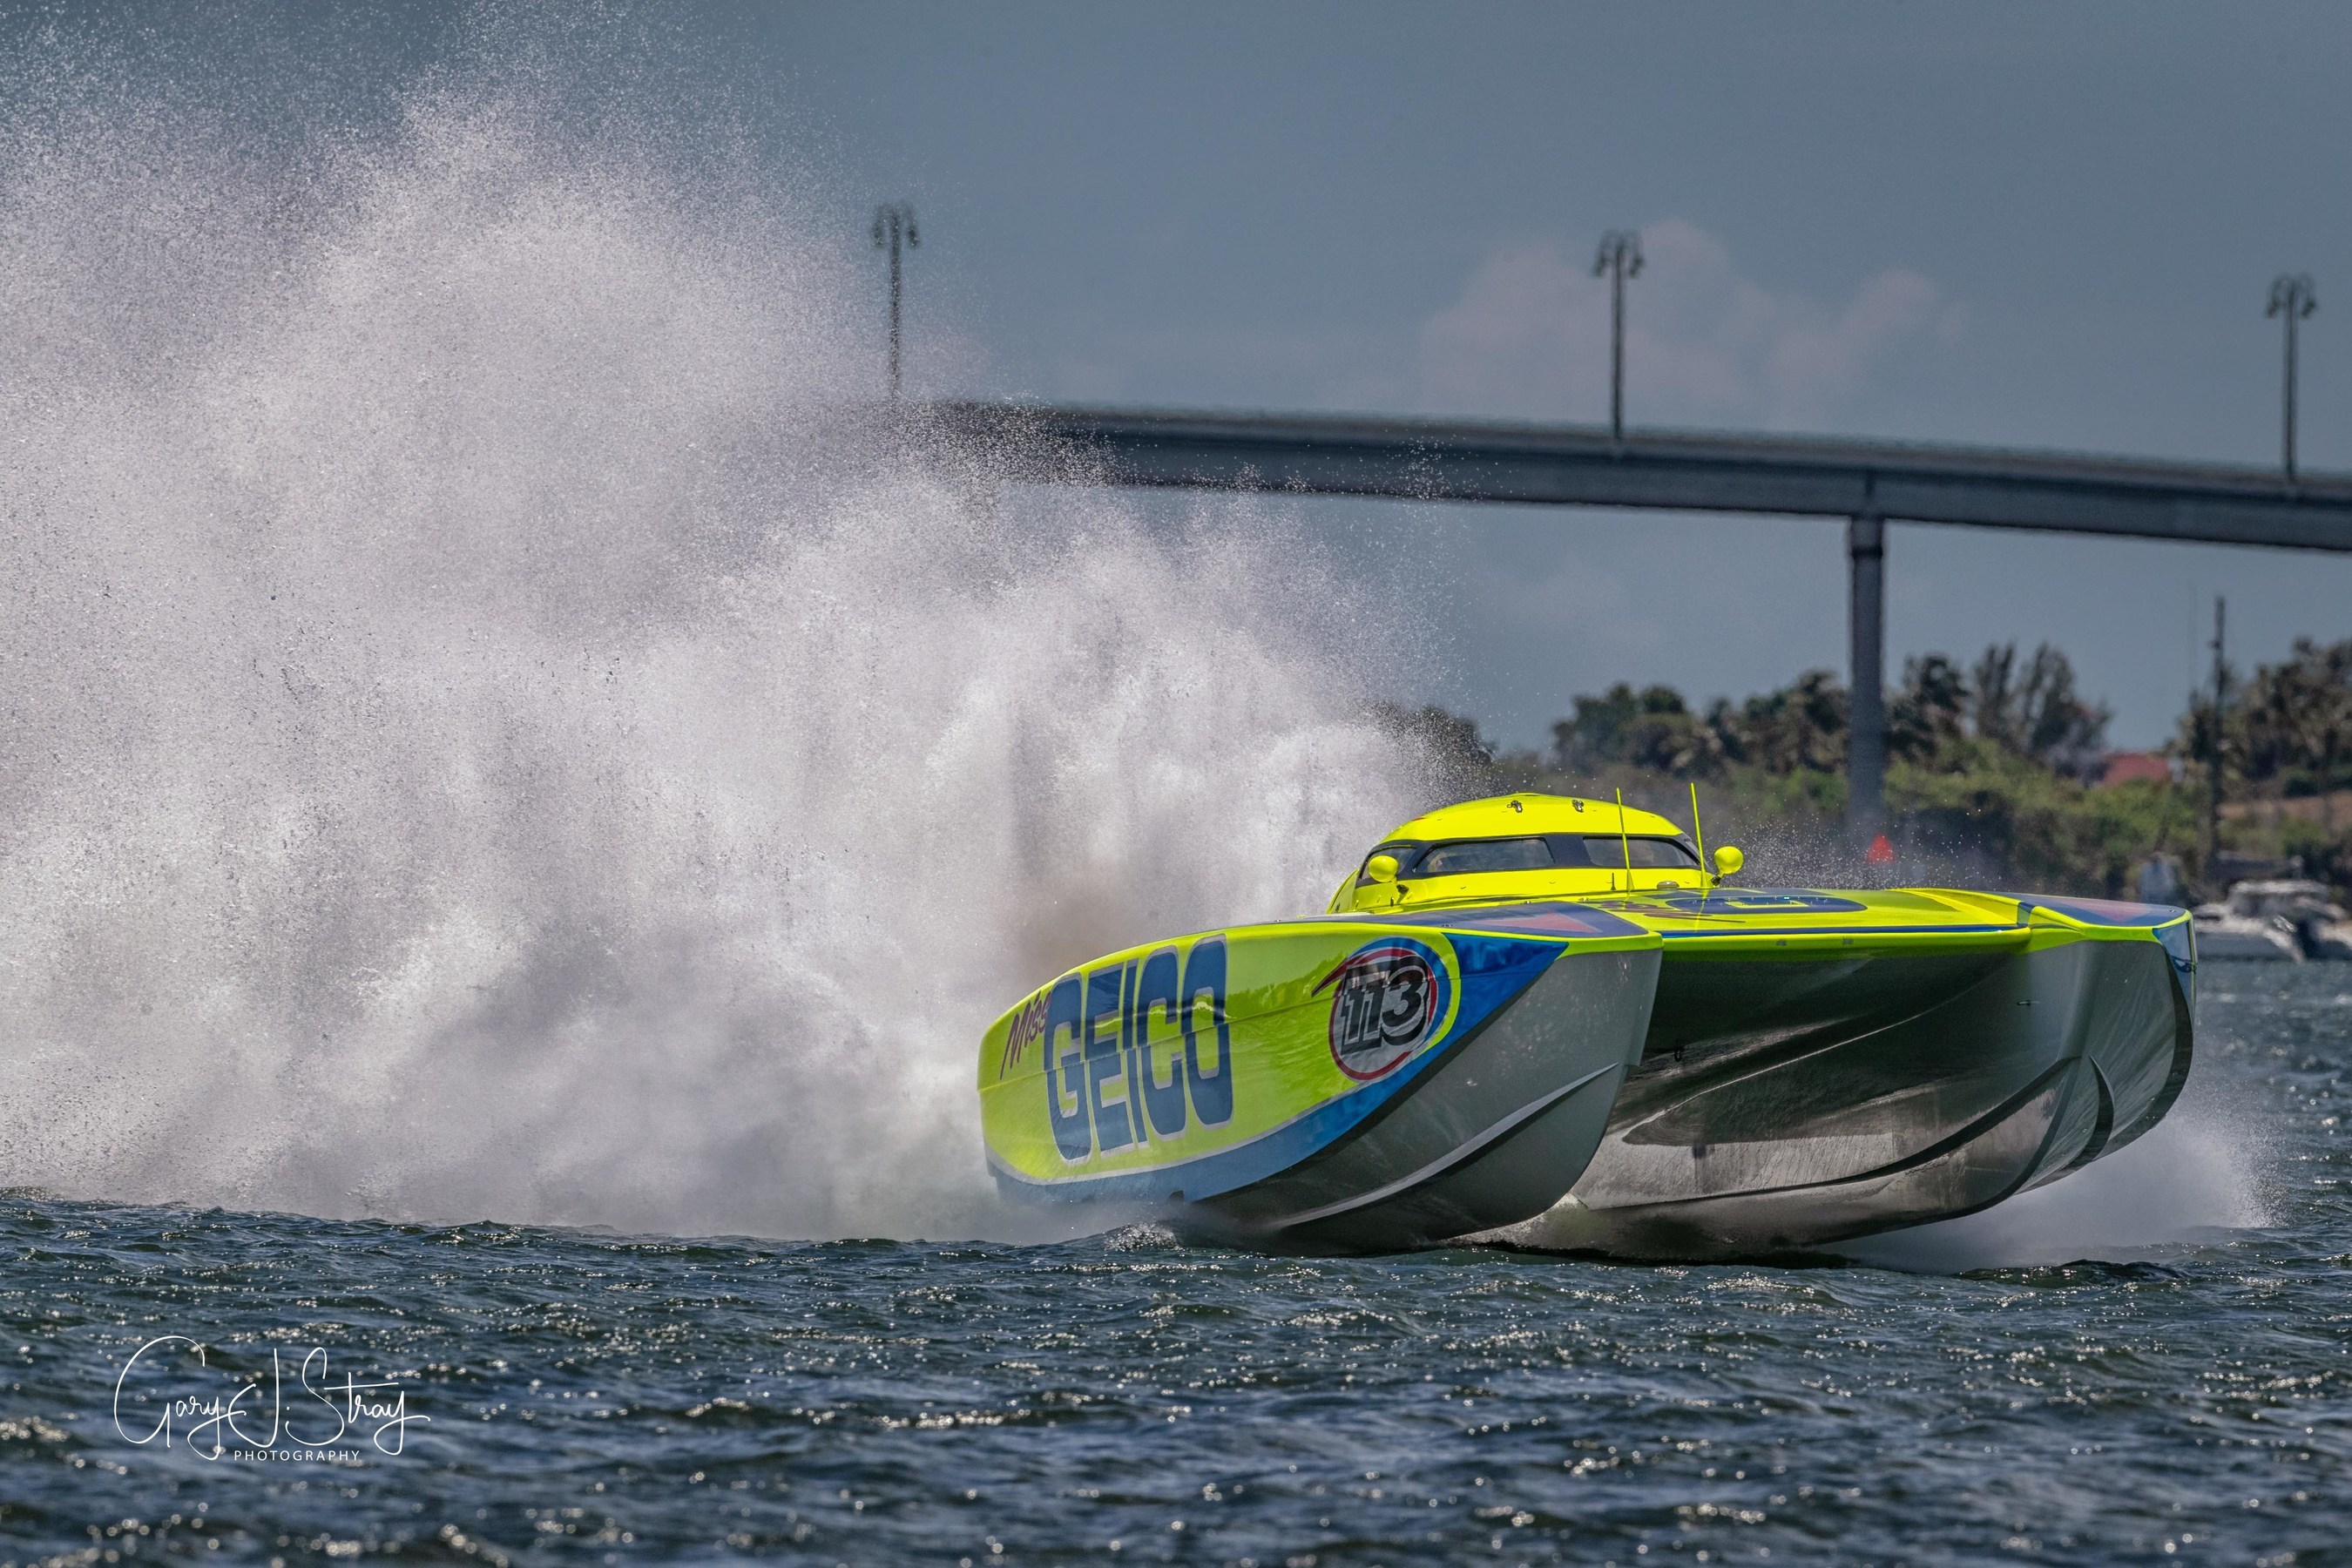 Offshore Racing Action Returns To Cocoa Beach Miss Geico Racing Seeks To Continue Winning Streak